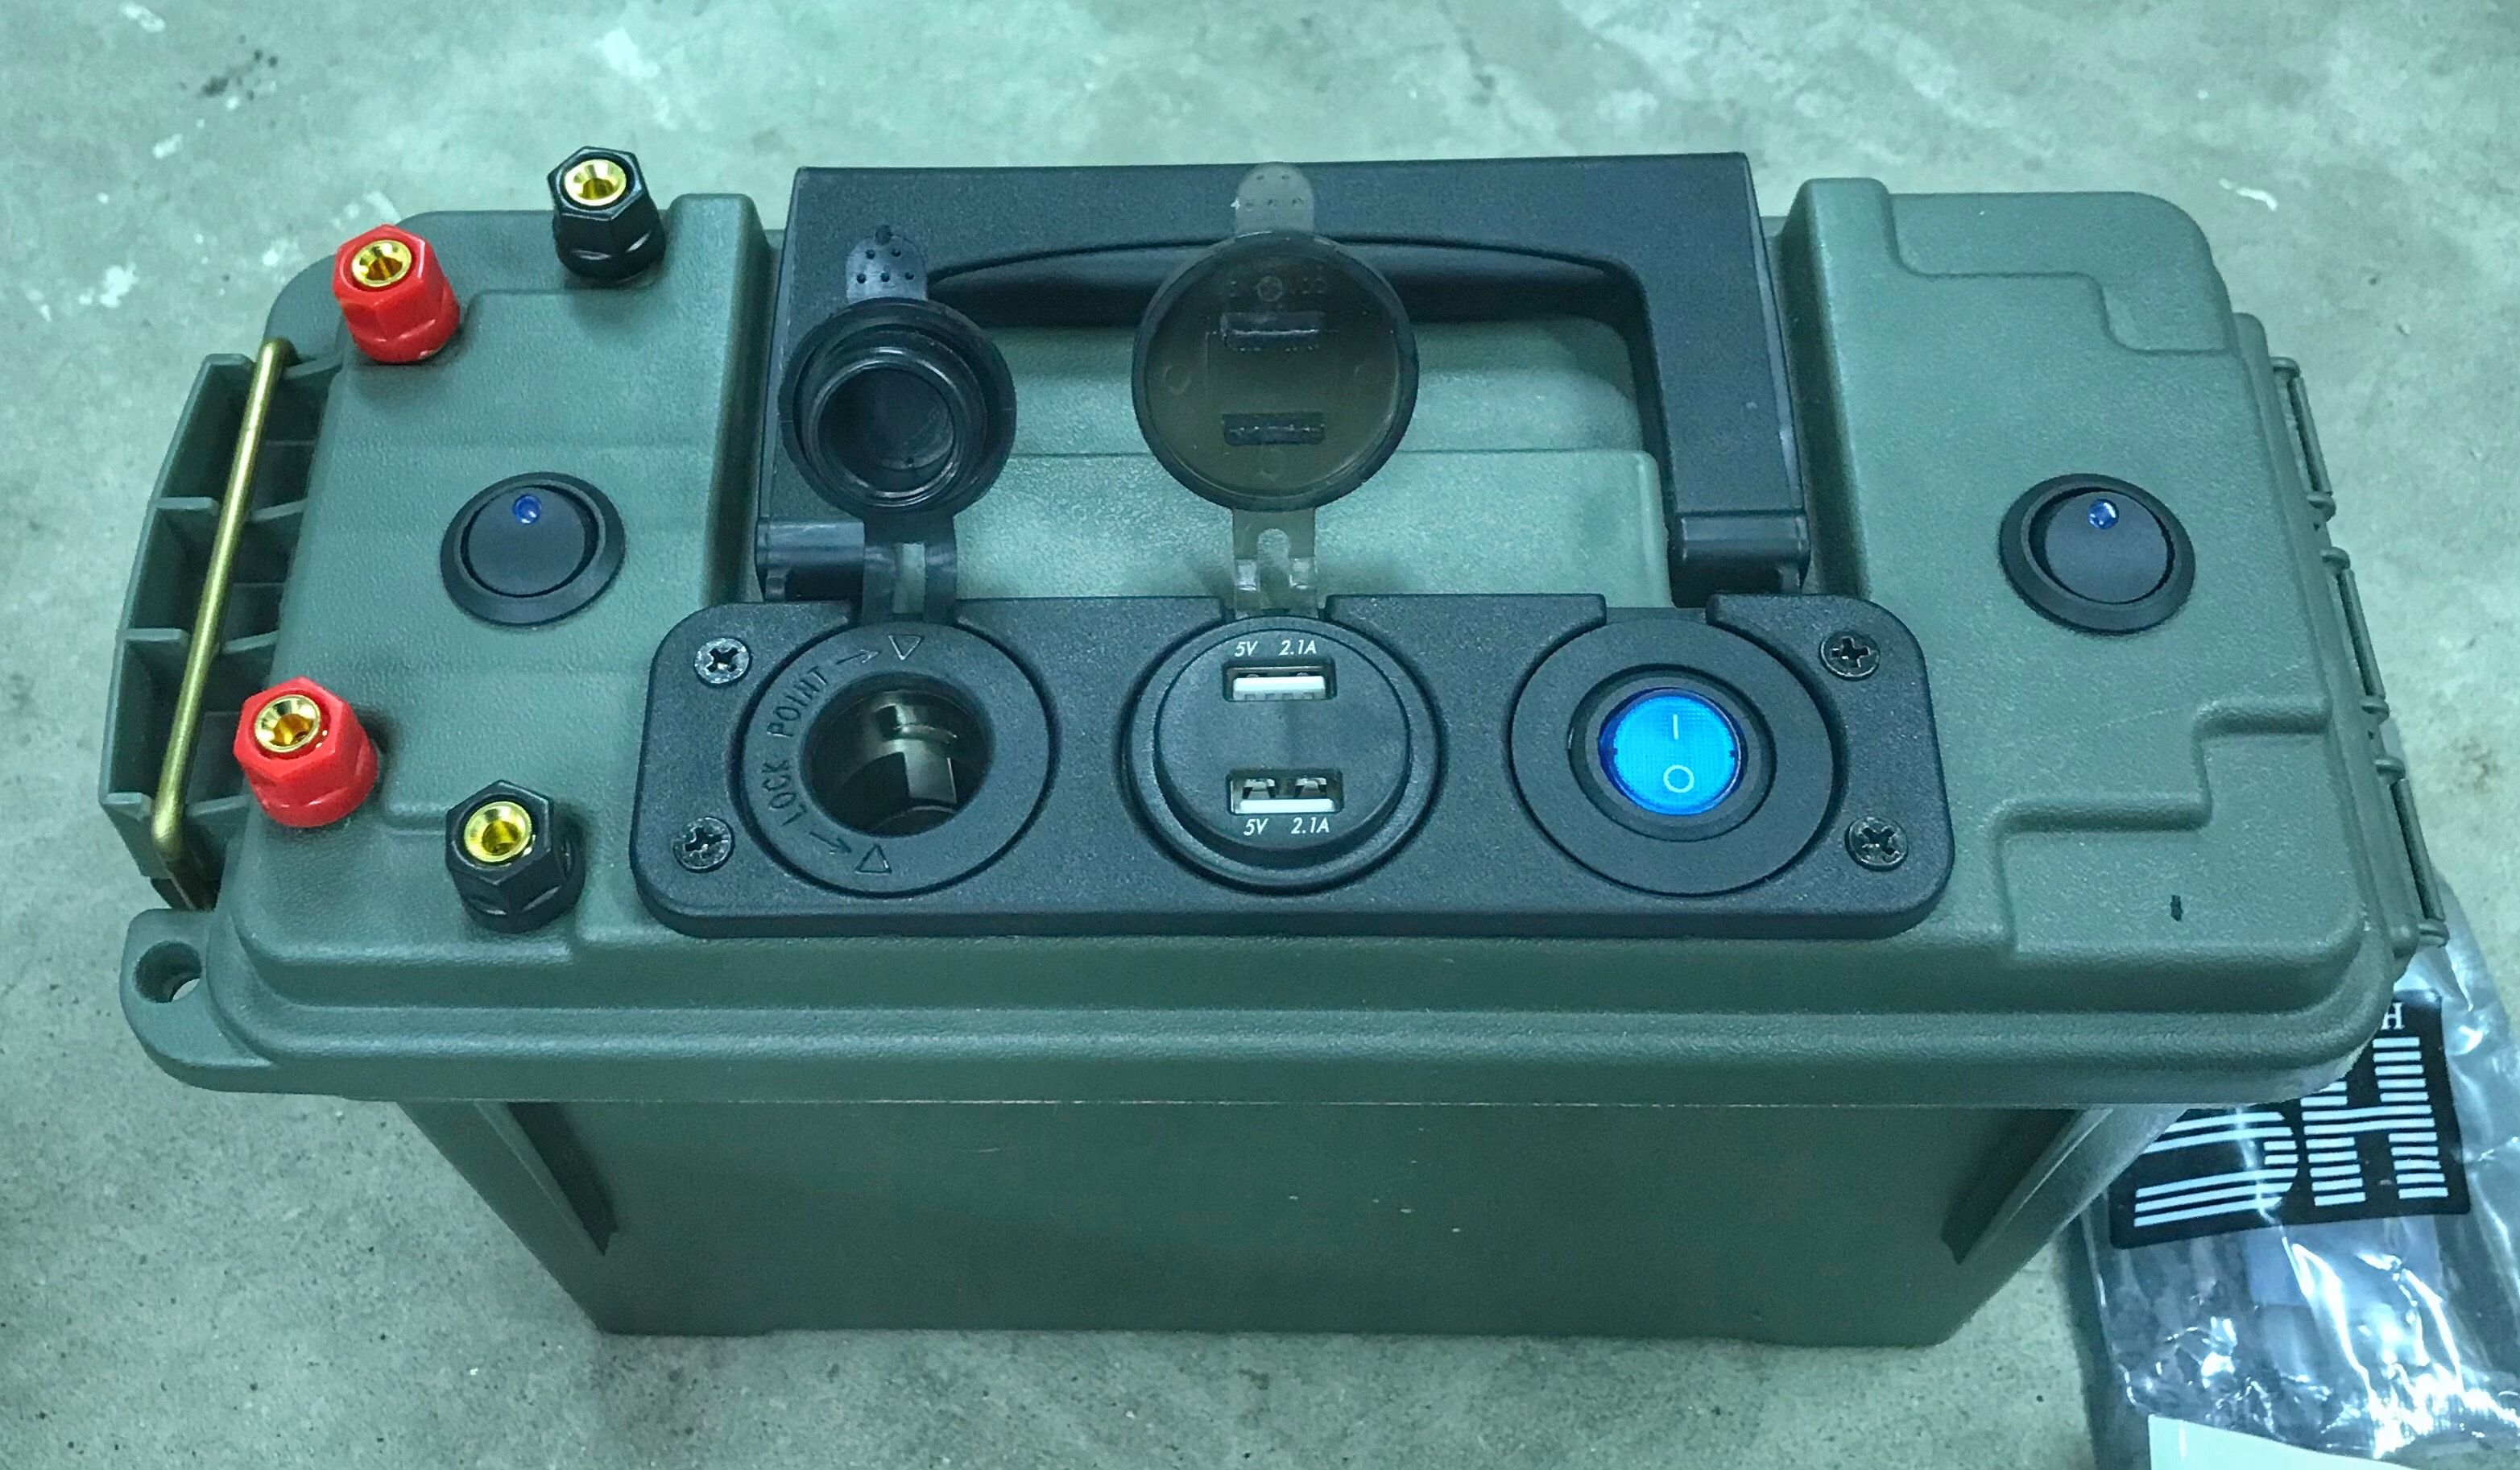 hight resolution of 12 volt battery box volt meter illuminates between usb plugs left switch controls posts right switch controls leds mounted on side